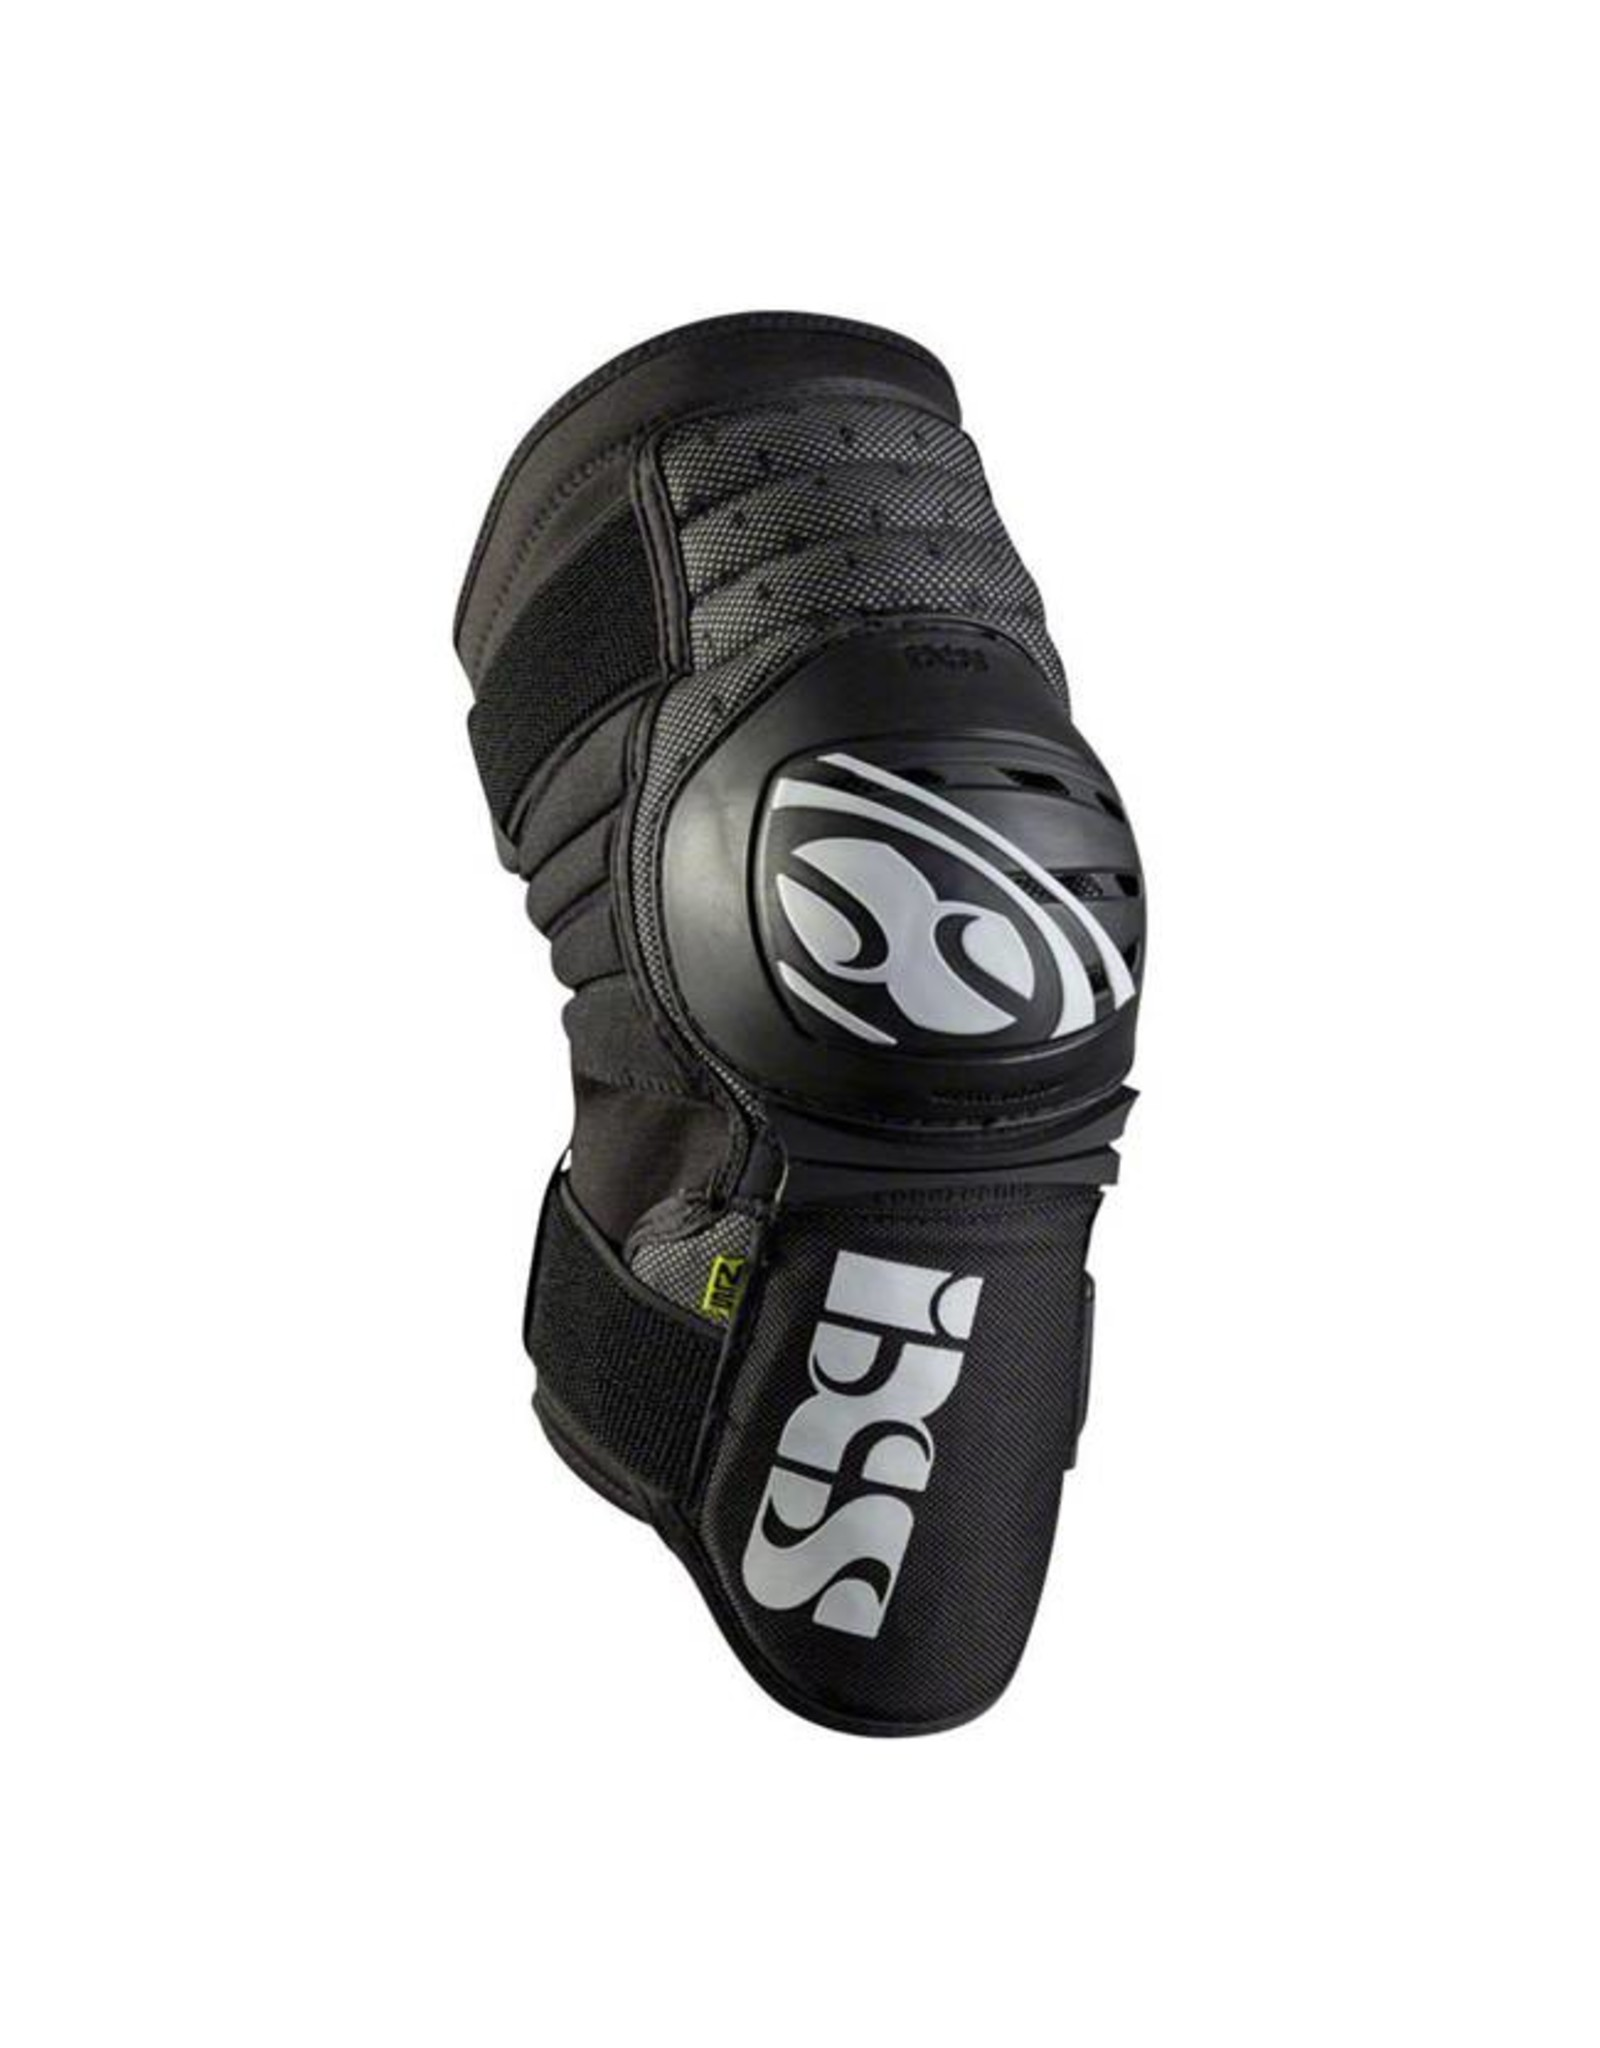 IXS iXS Dagger Knee Guard: Black, LG